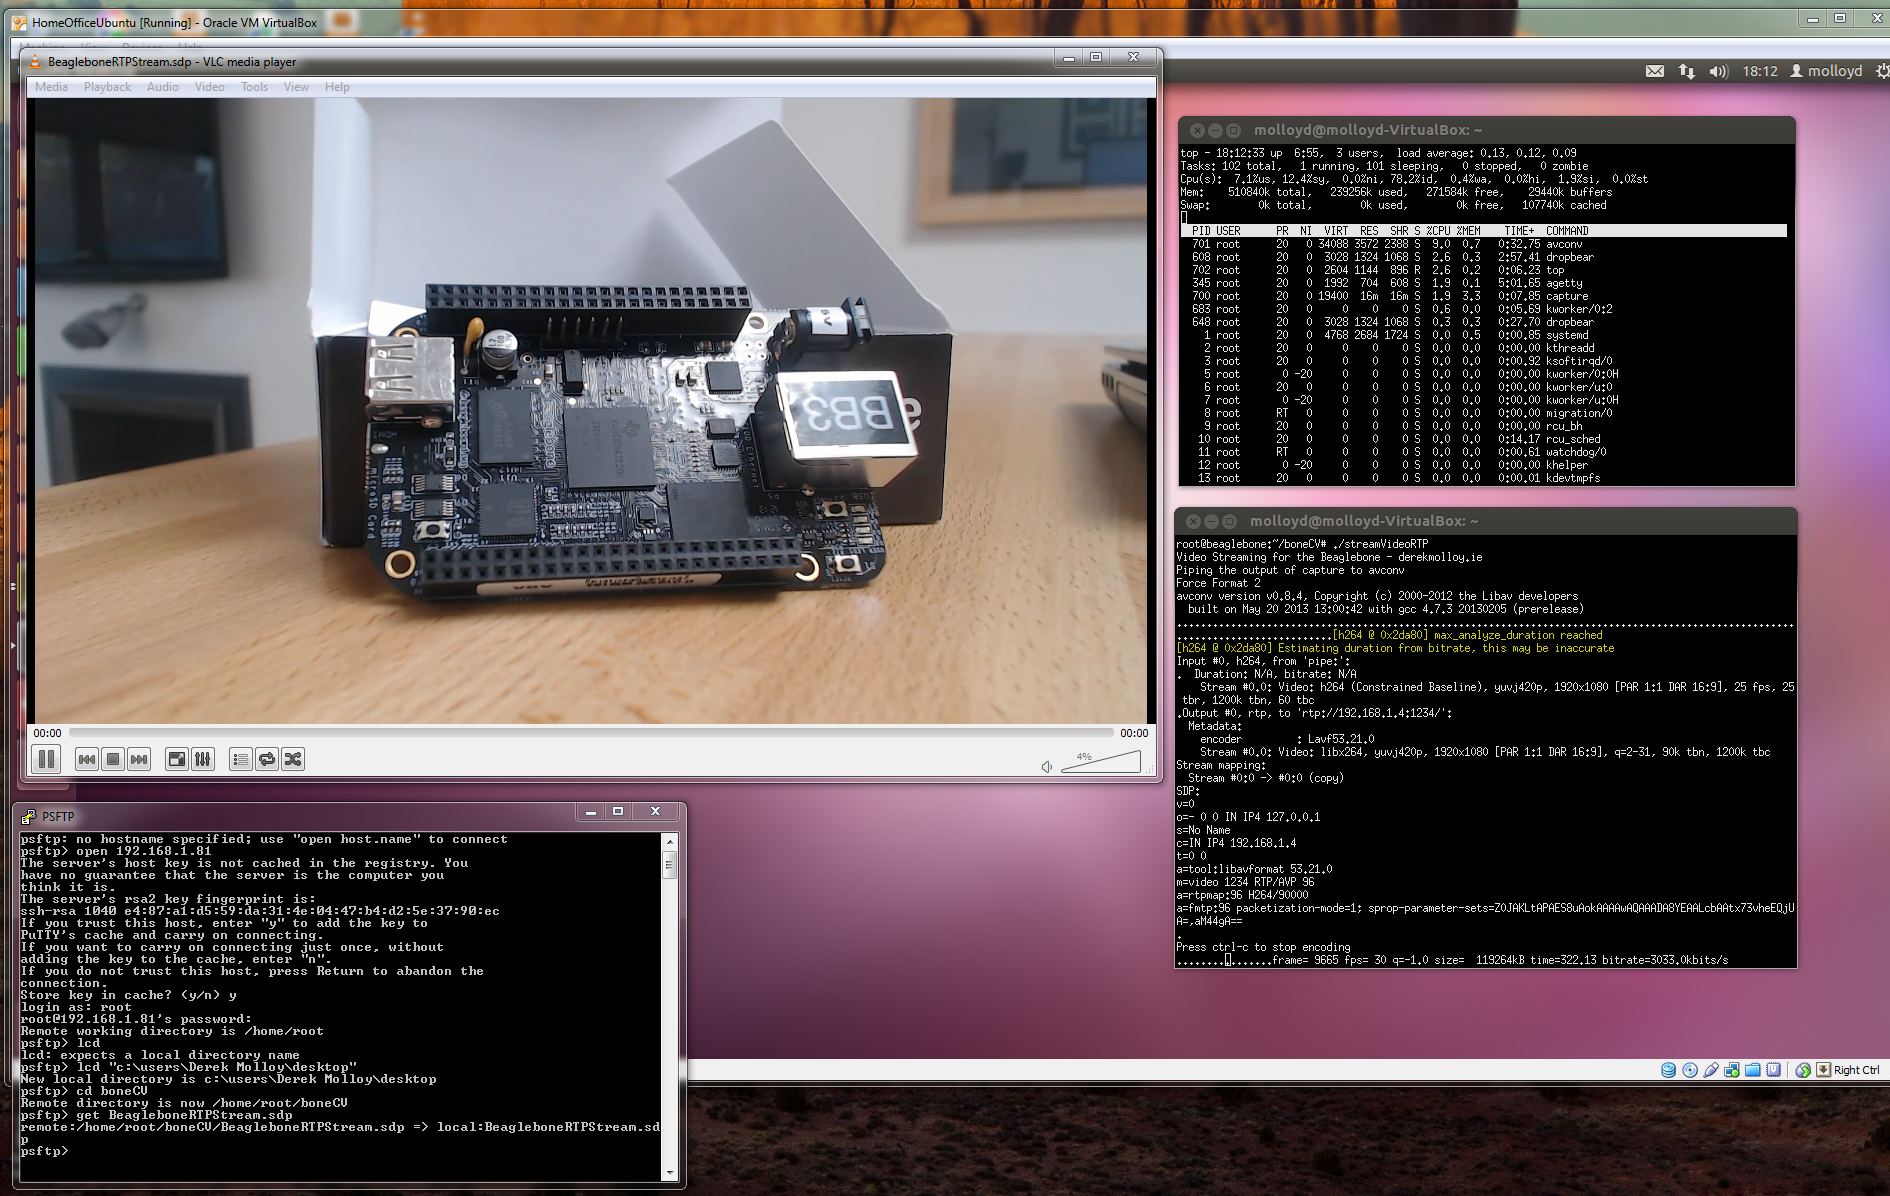 Streaming Video Using RTP on the Beaglebone Black